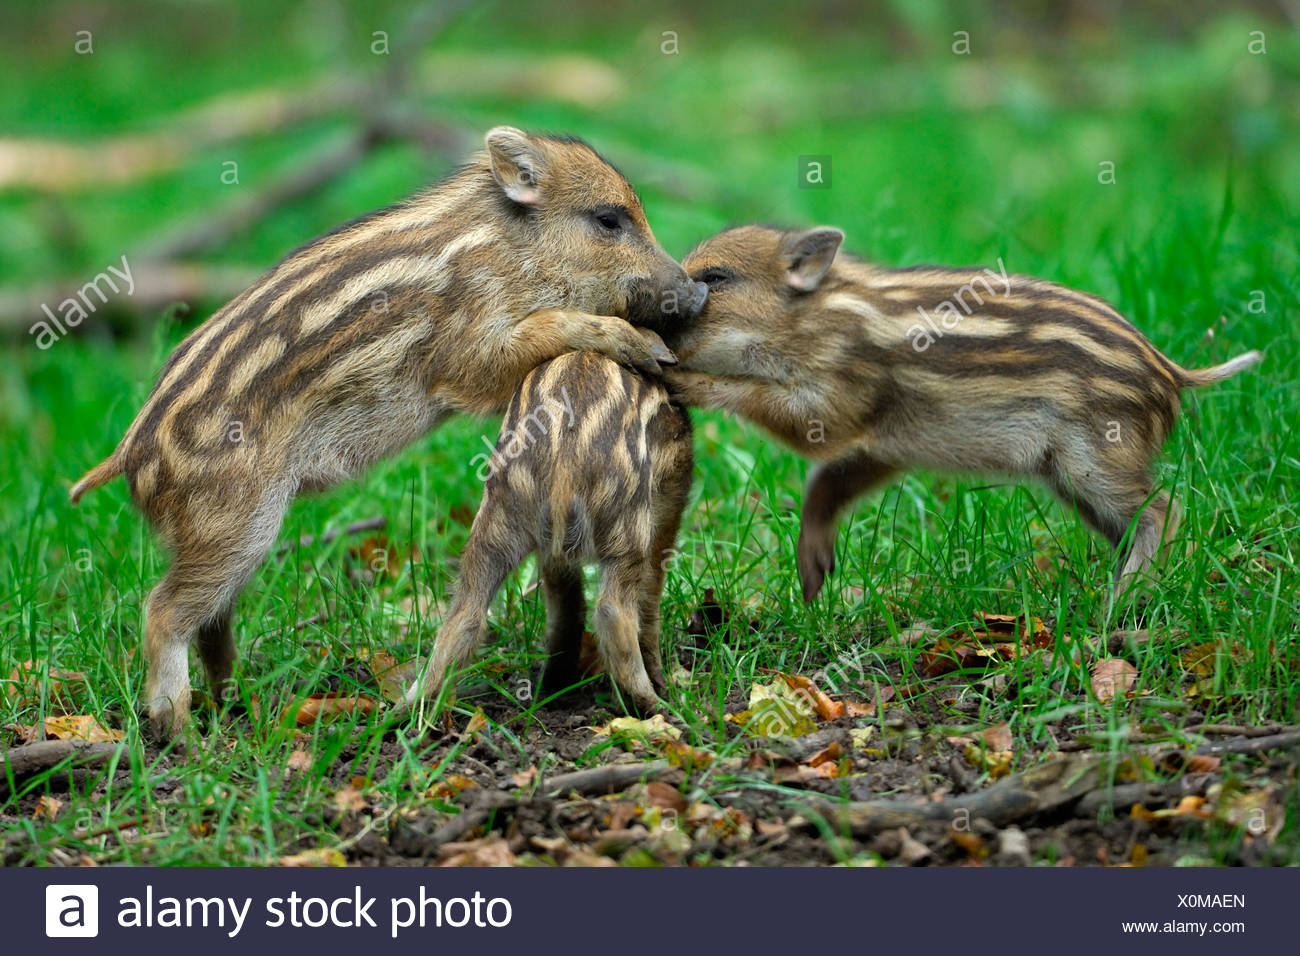 Shoats, boars (Sus scrofa), playing - Stock Image